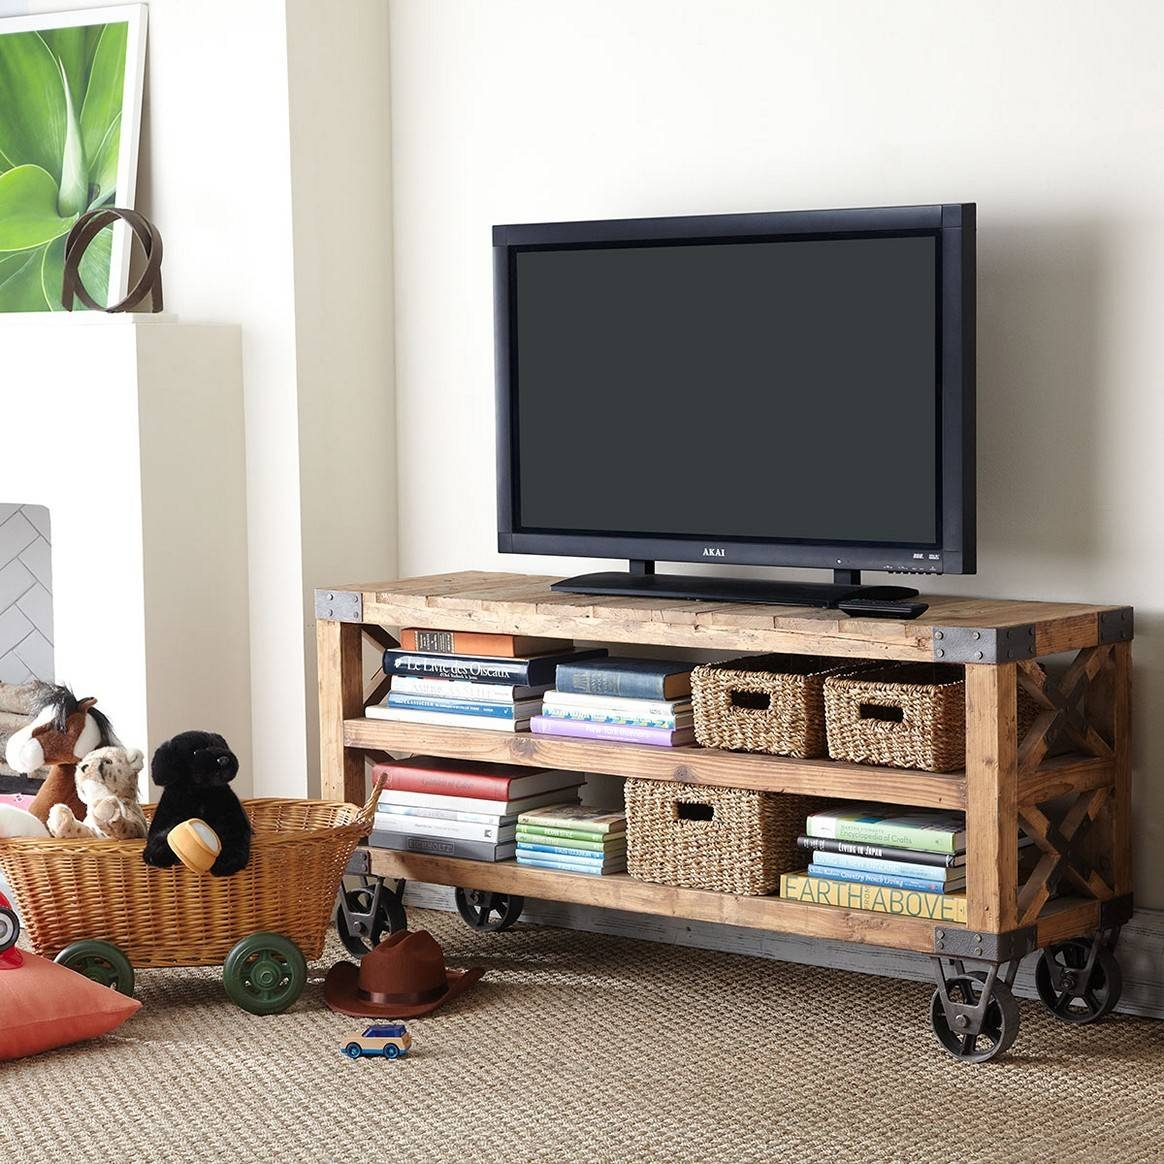 Tv Stands For Bedroom Dressers Ideas With Small Apartment Picture For Tv Stands With Baskets (View 8 of 15)